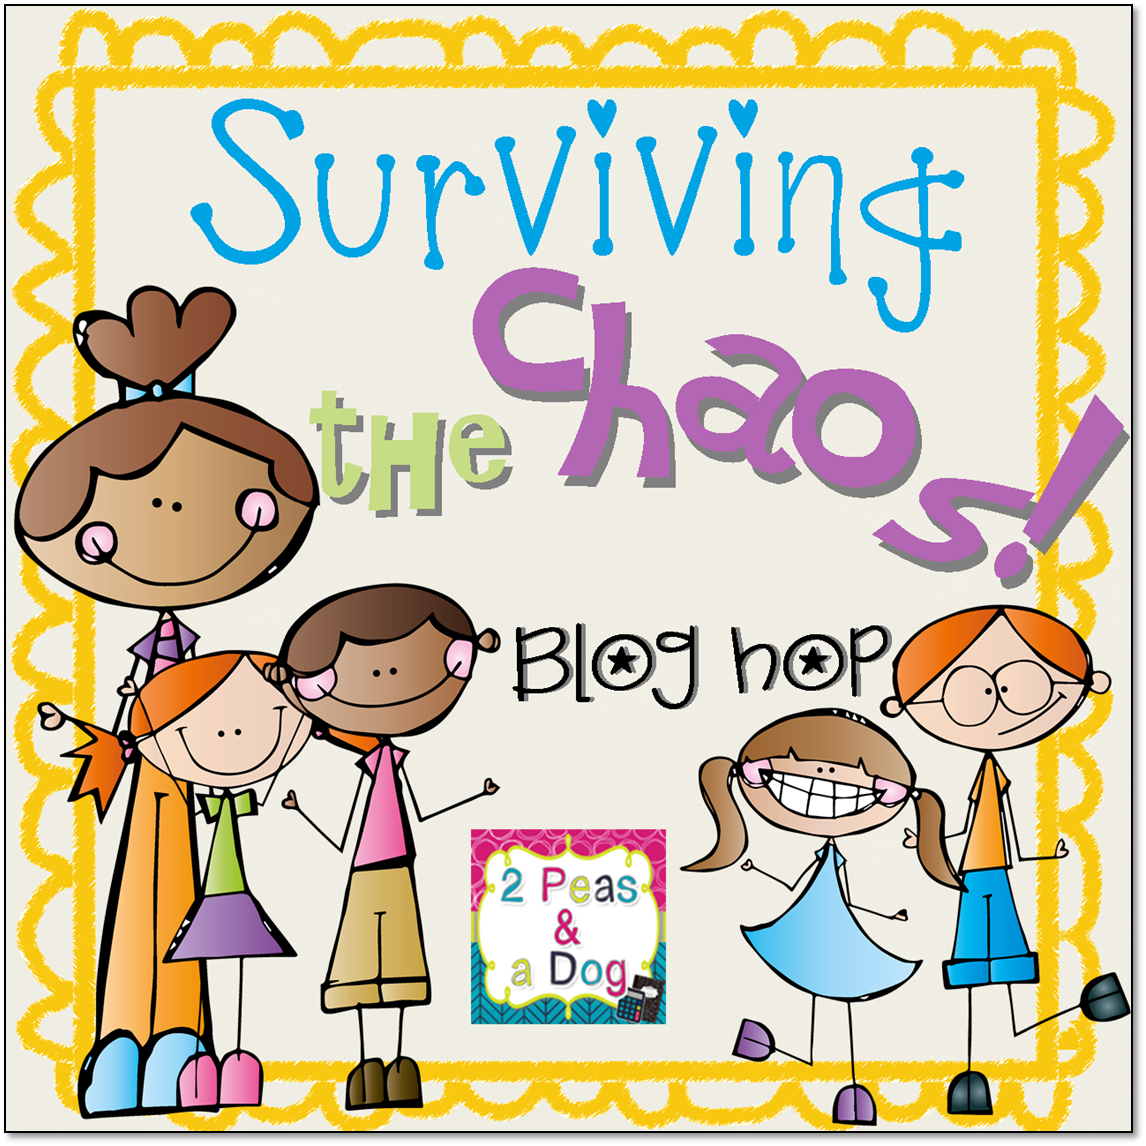 http://2peasandadog.blogspot.com/2014/05/surviving.html